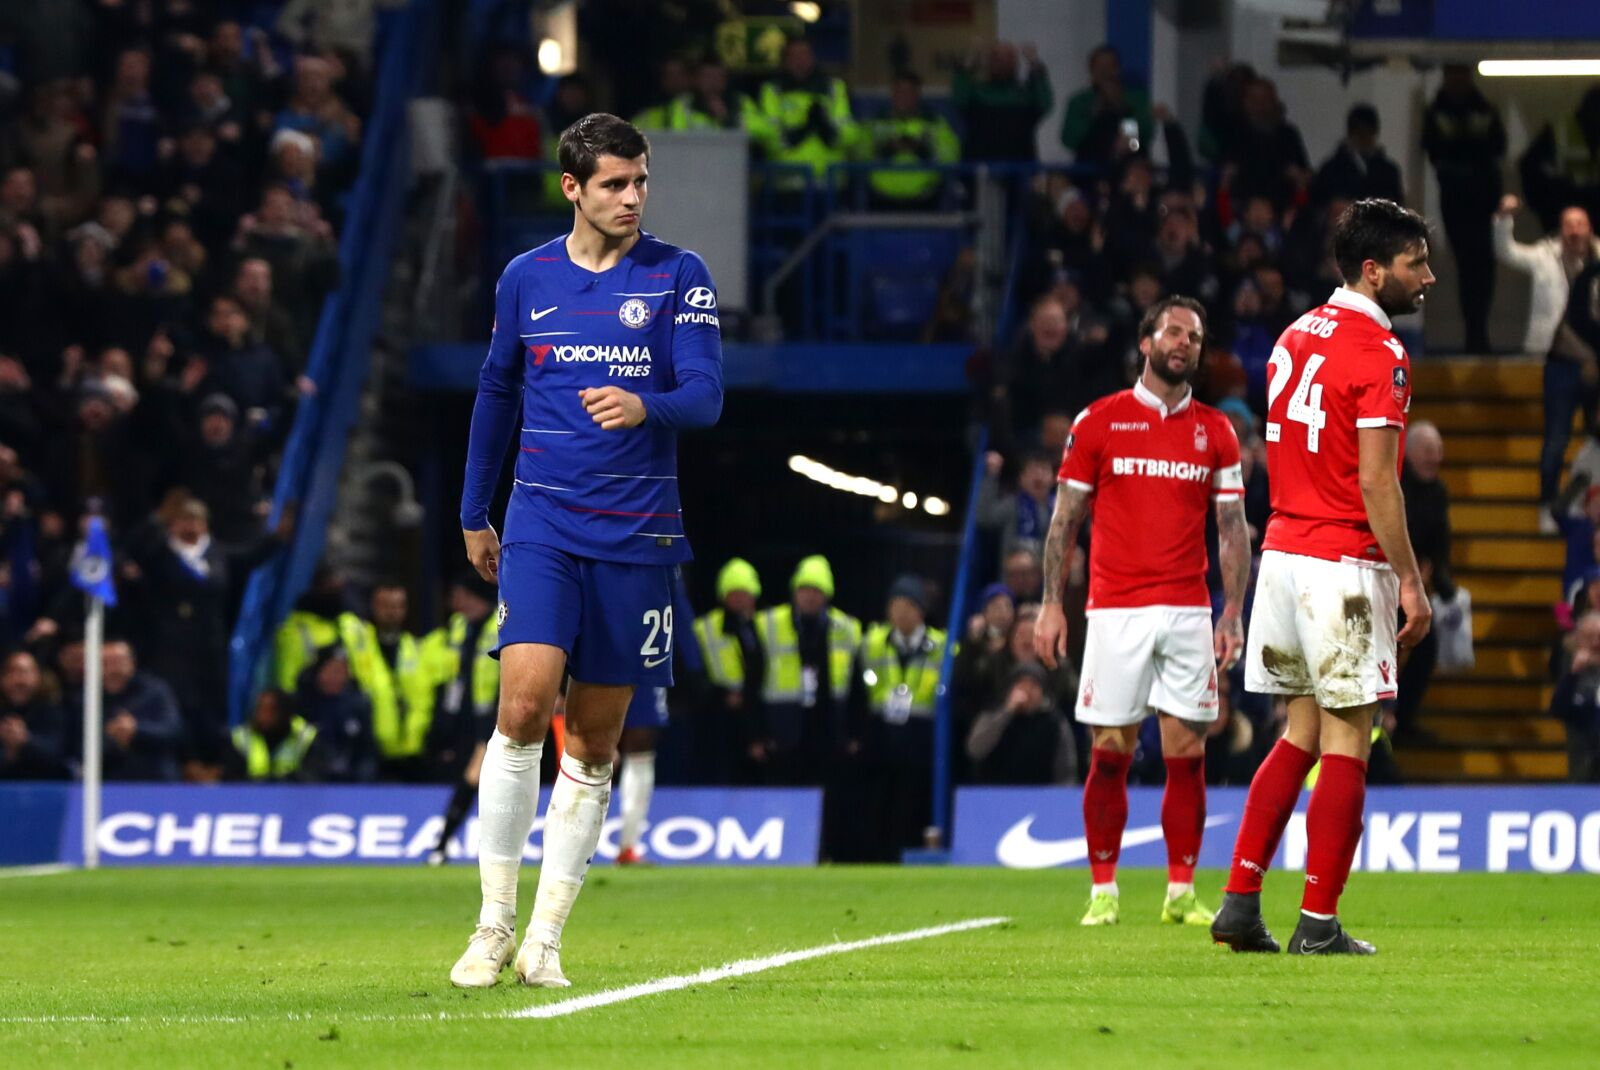 Chelsea: Ongoing striker debates speak to change without improvement